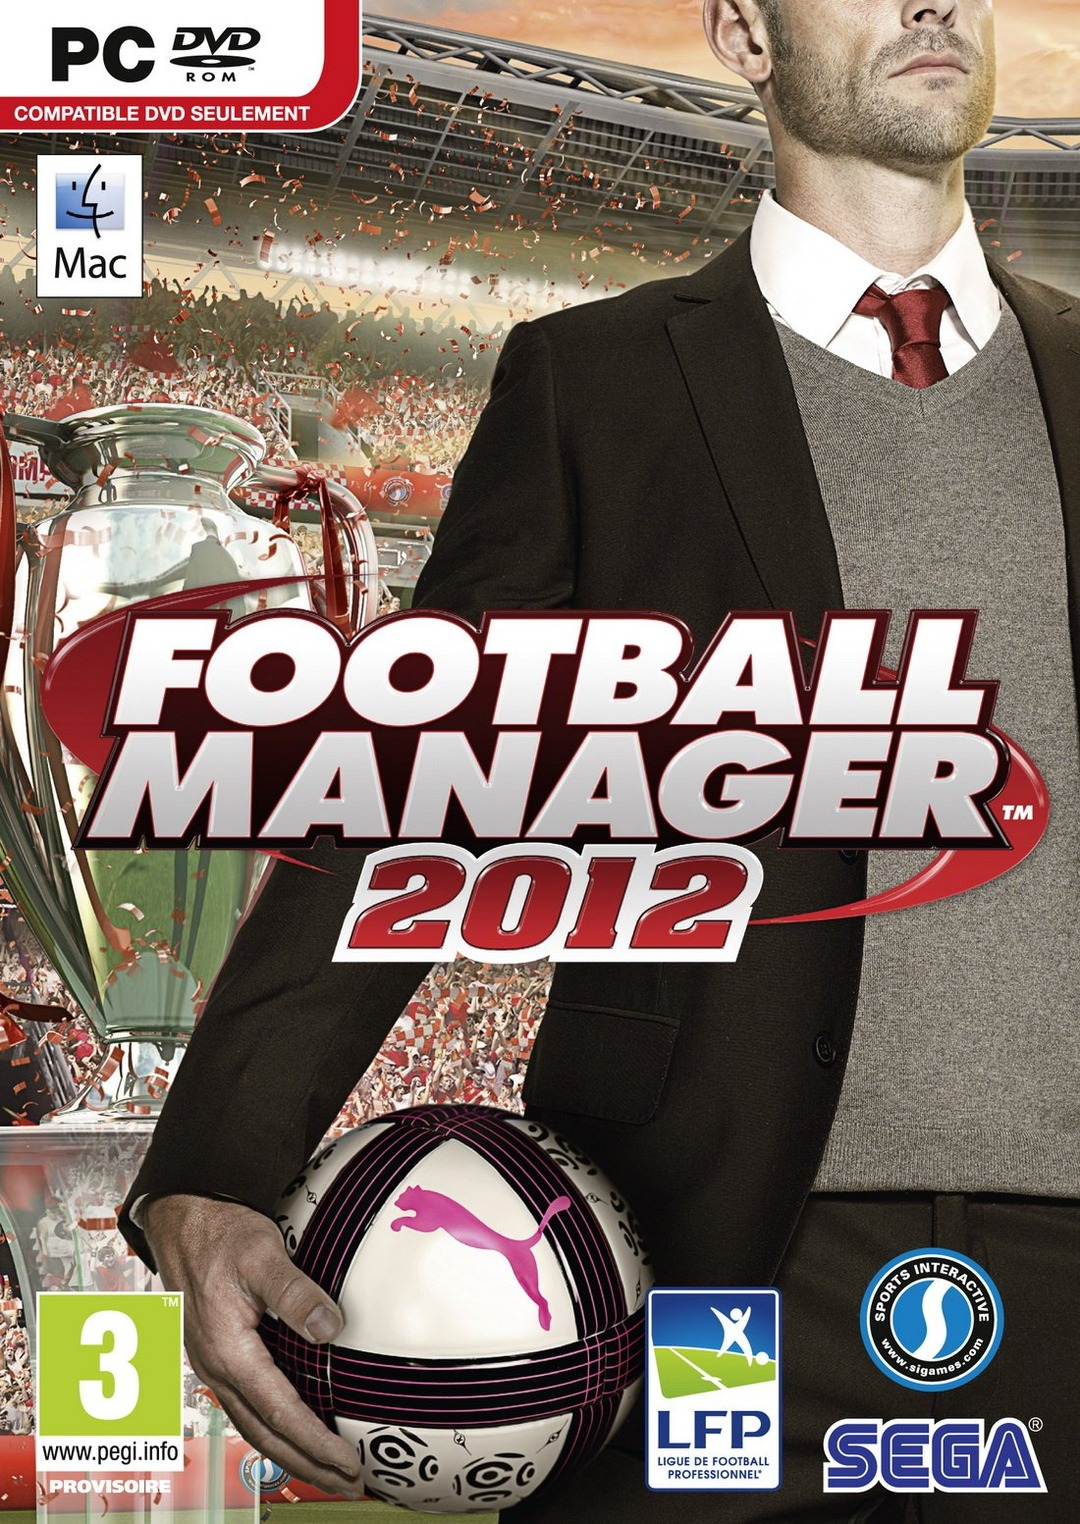 Football Manager 2012 [PC] [FS][WU]